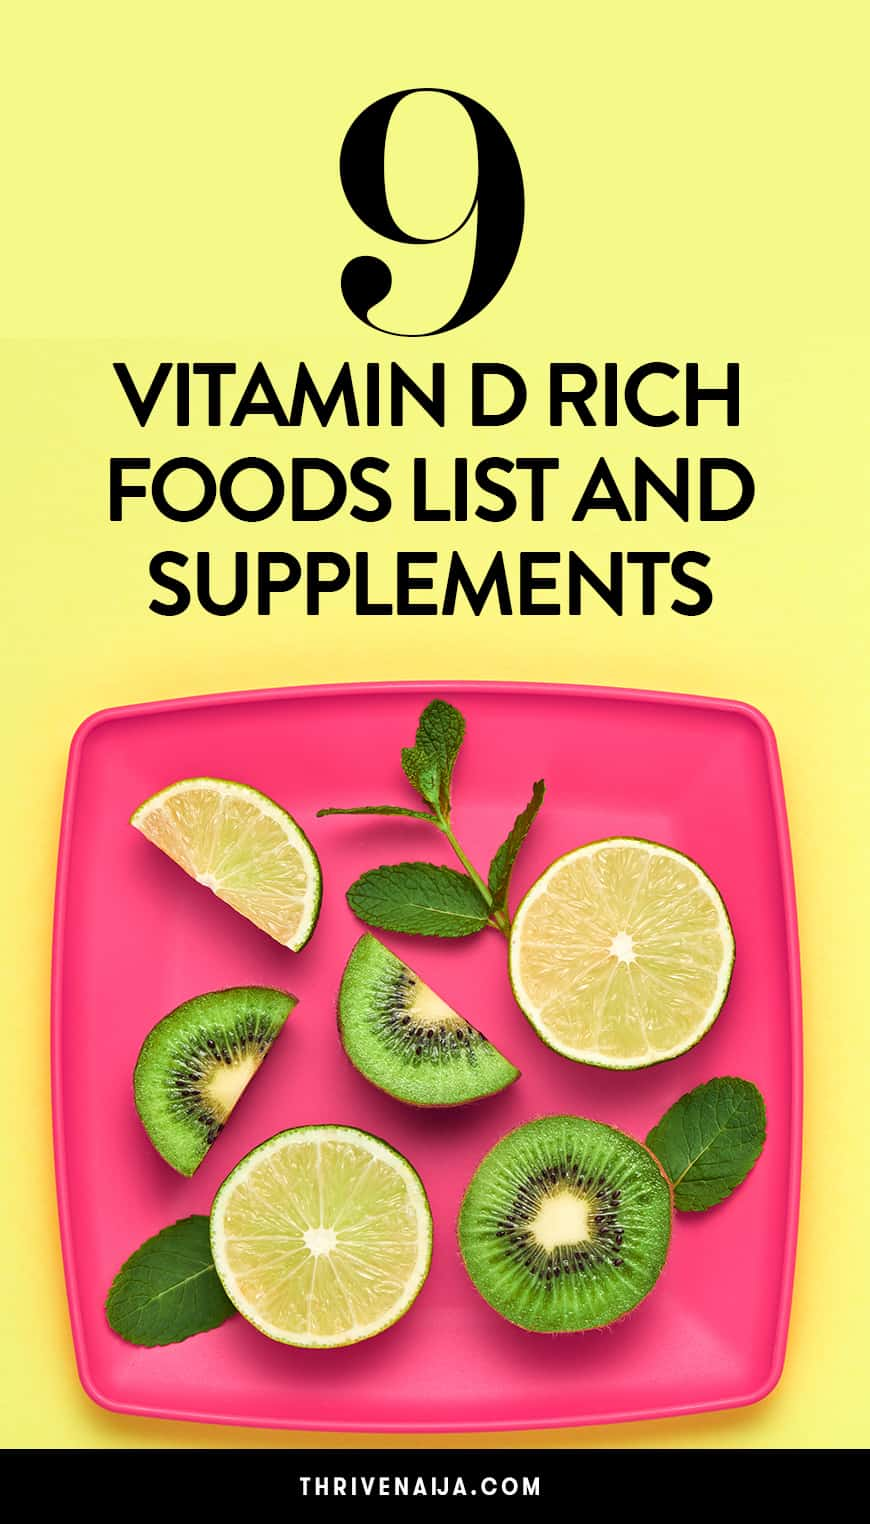 Vitamin D For Vegans: 9 Vitamin D Rich Foods List And ...